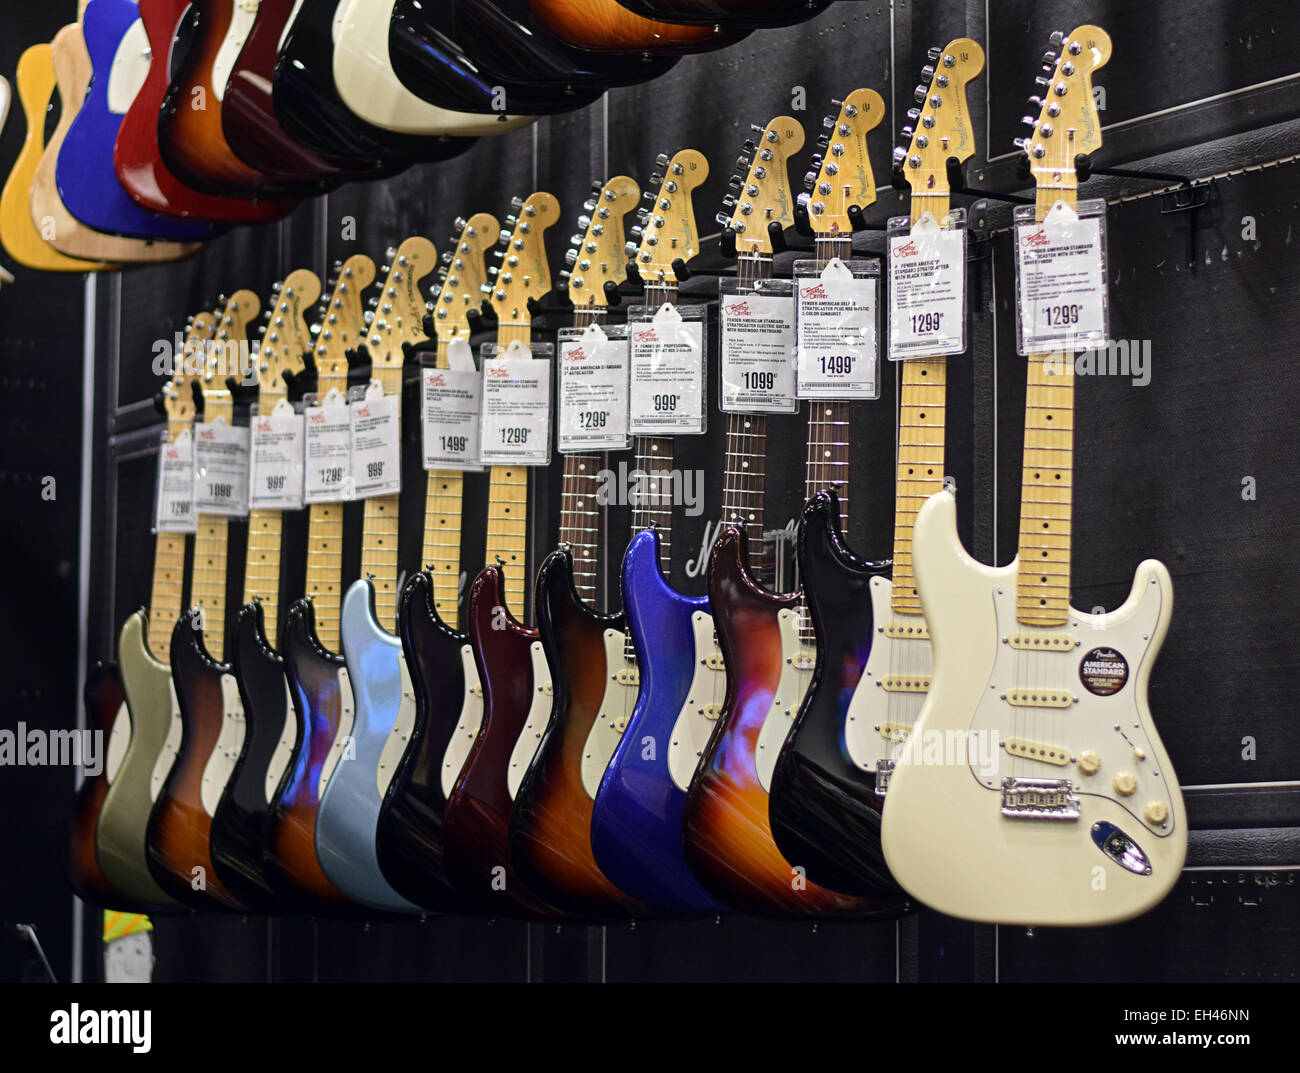 fender electric guitars for sale at the guitar center on west 14th stock photo 79383745 alamy. Black Bedroom Furniture Sets. Home Design Ideas